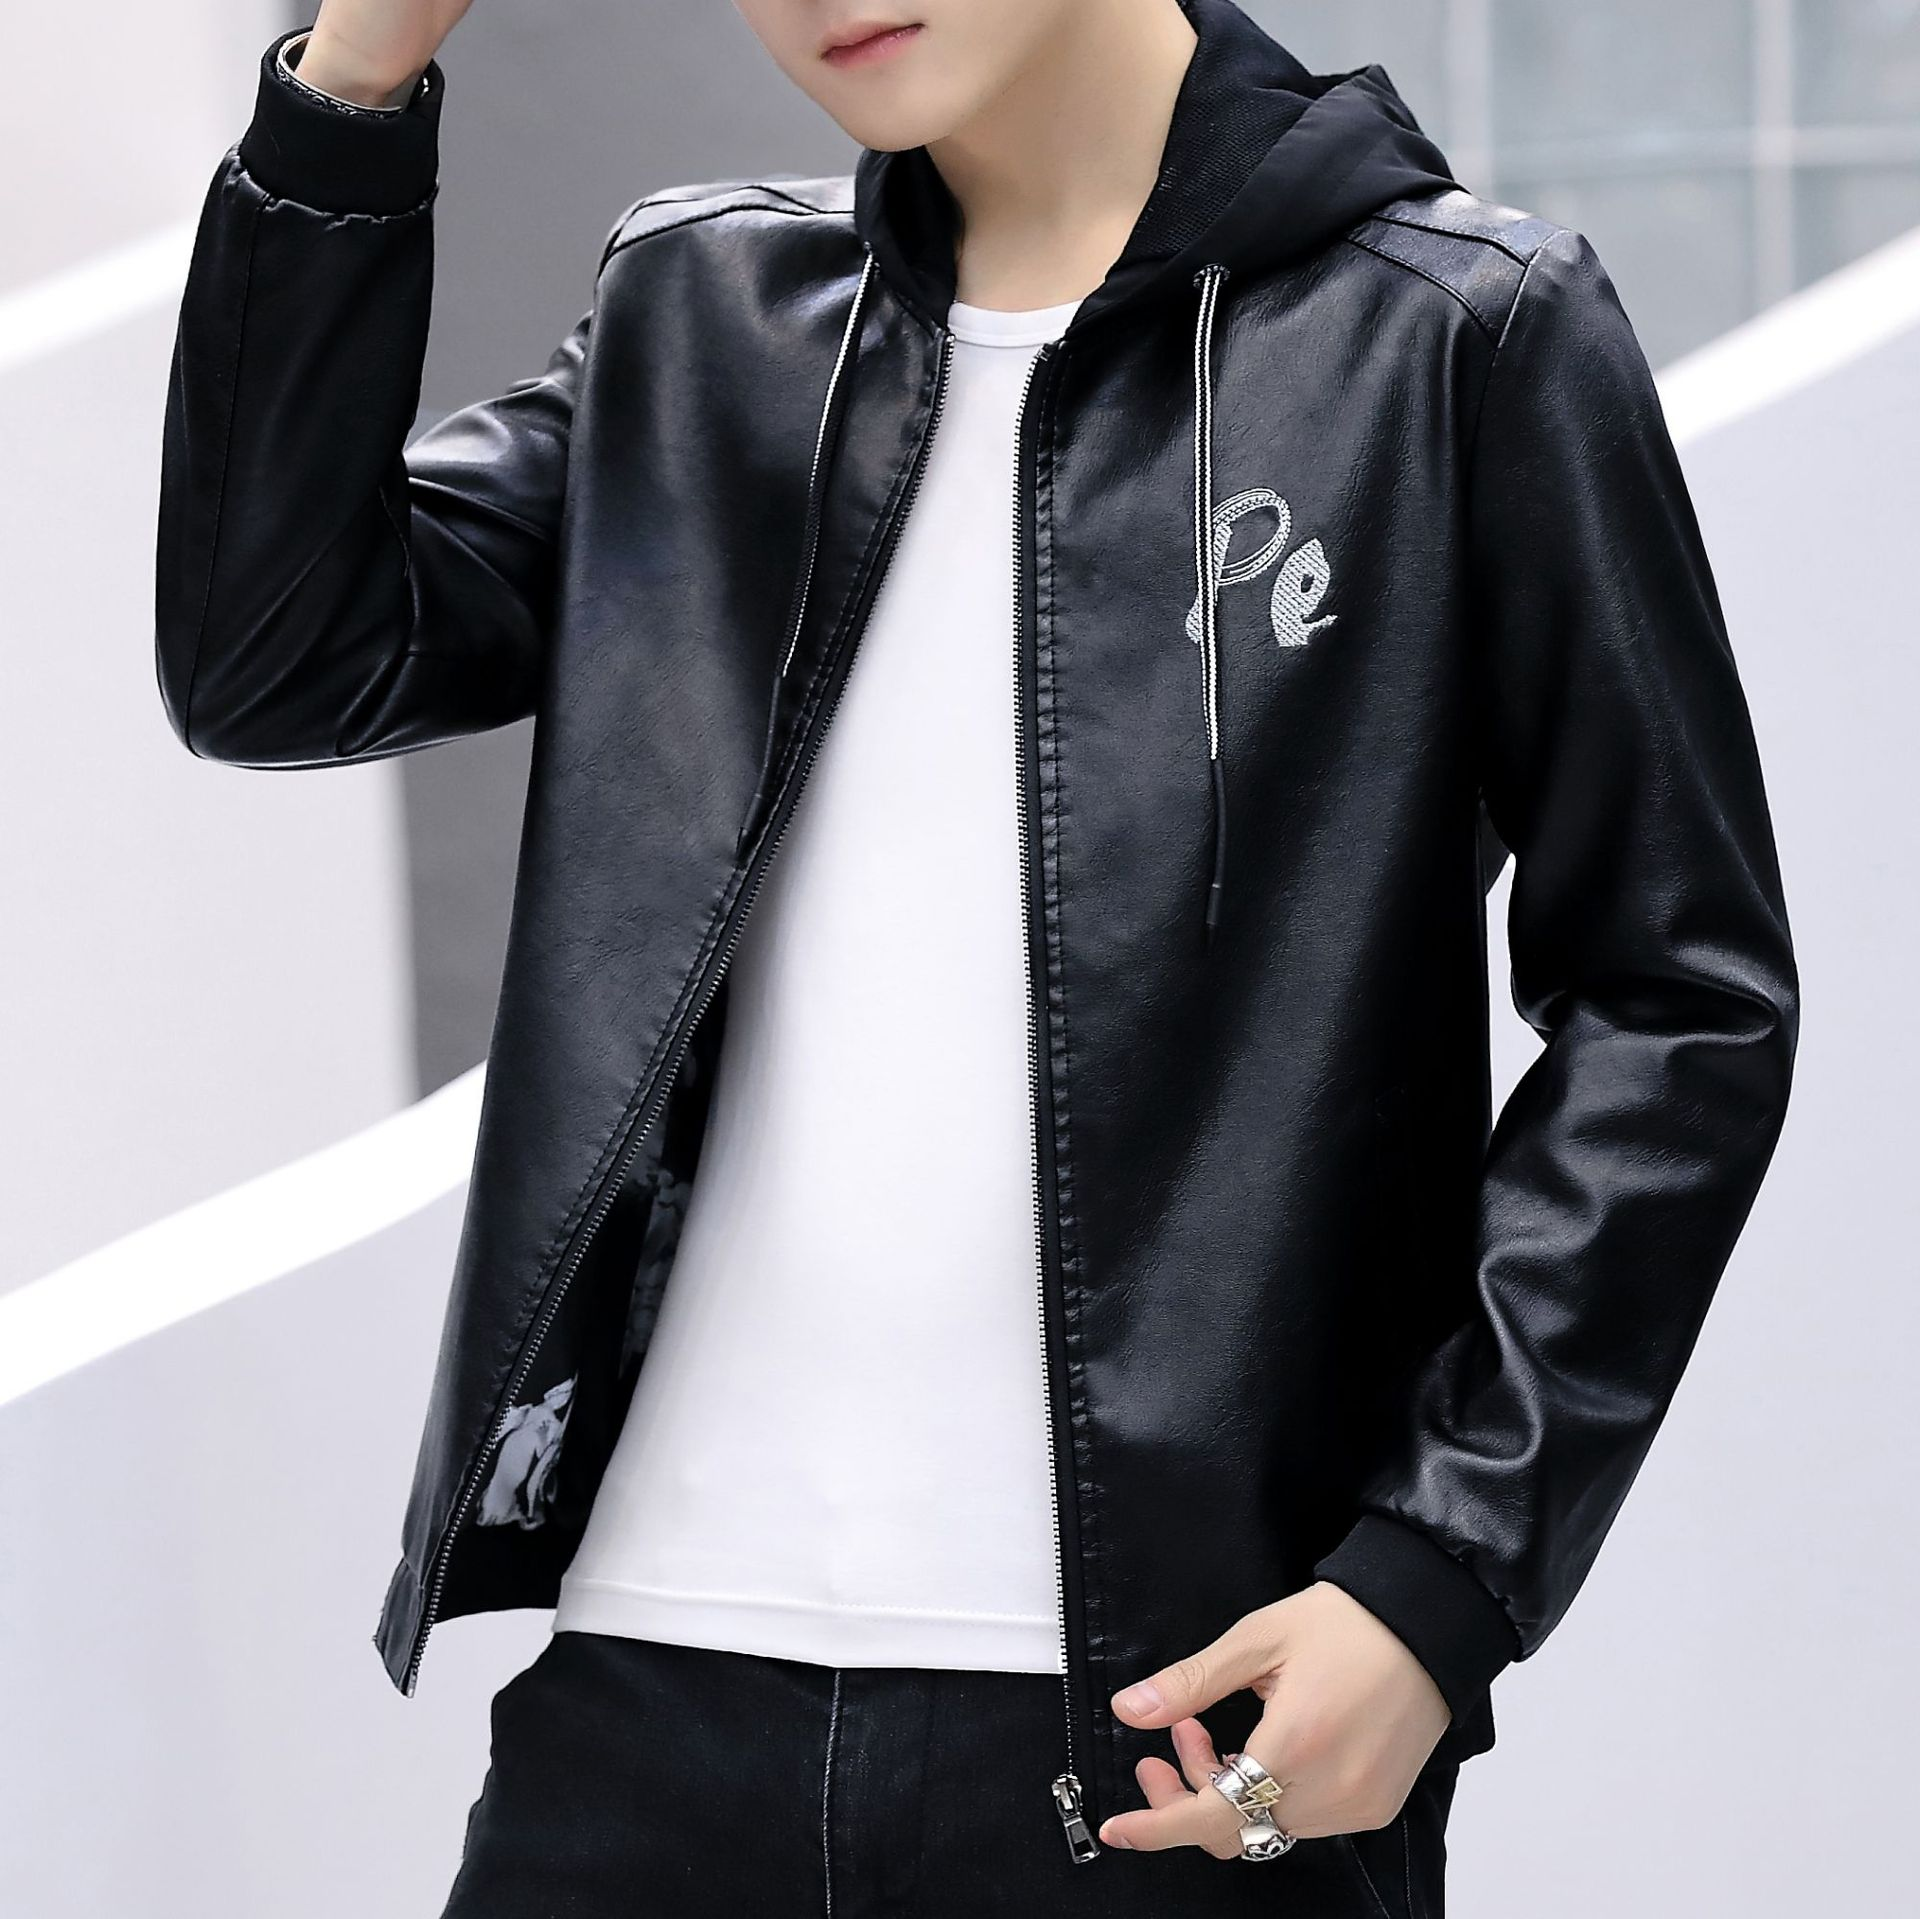 2019 Spring MEN'S Leather Coat Youth New Style Slim Fit Hooded Embroidery Leather Jacket MEN'S Coat